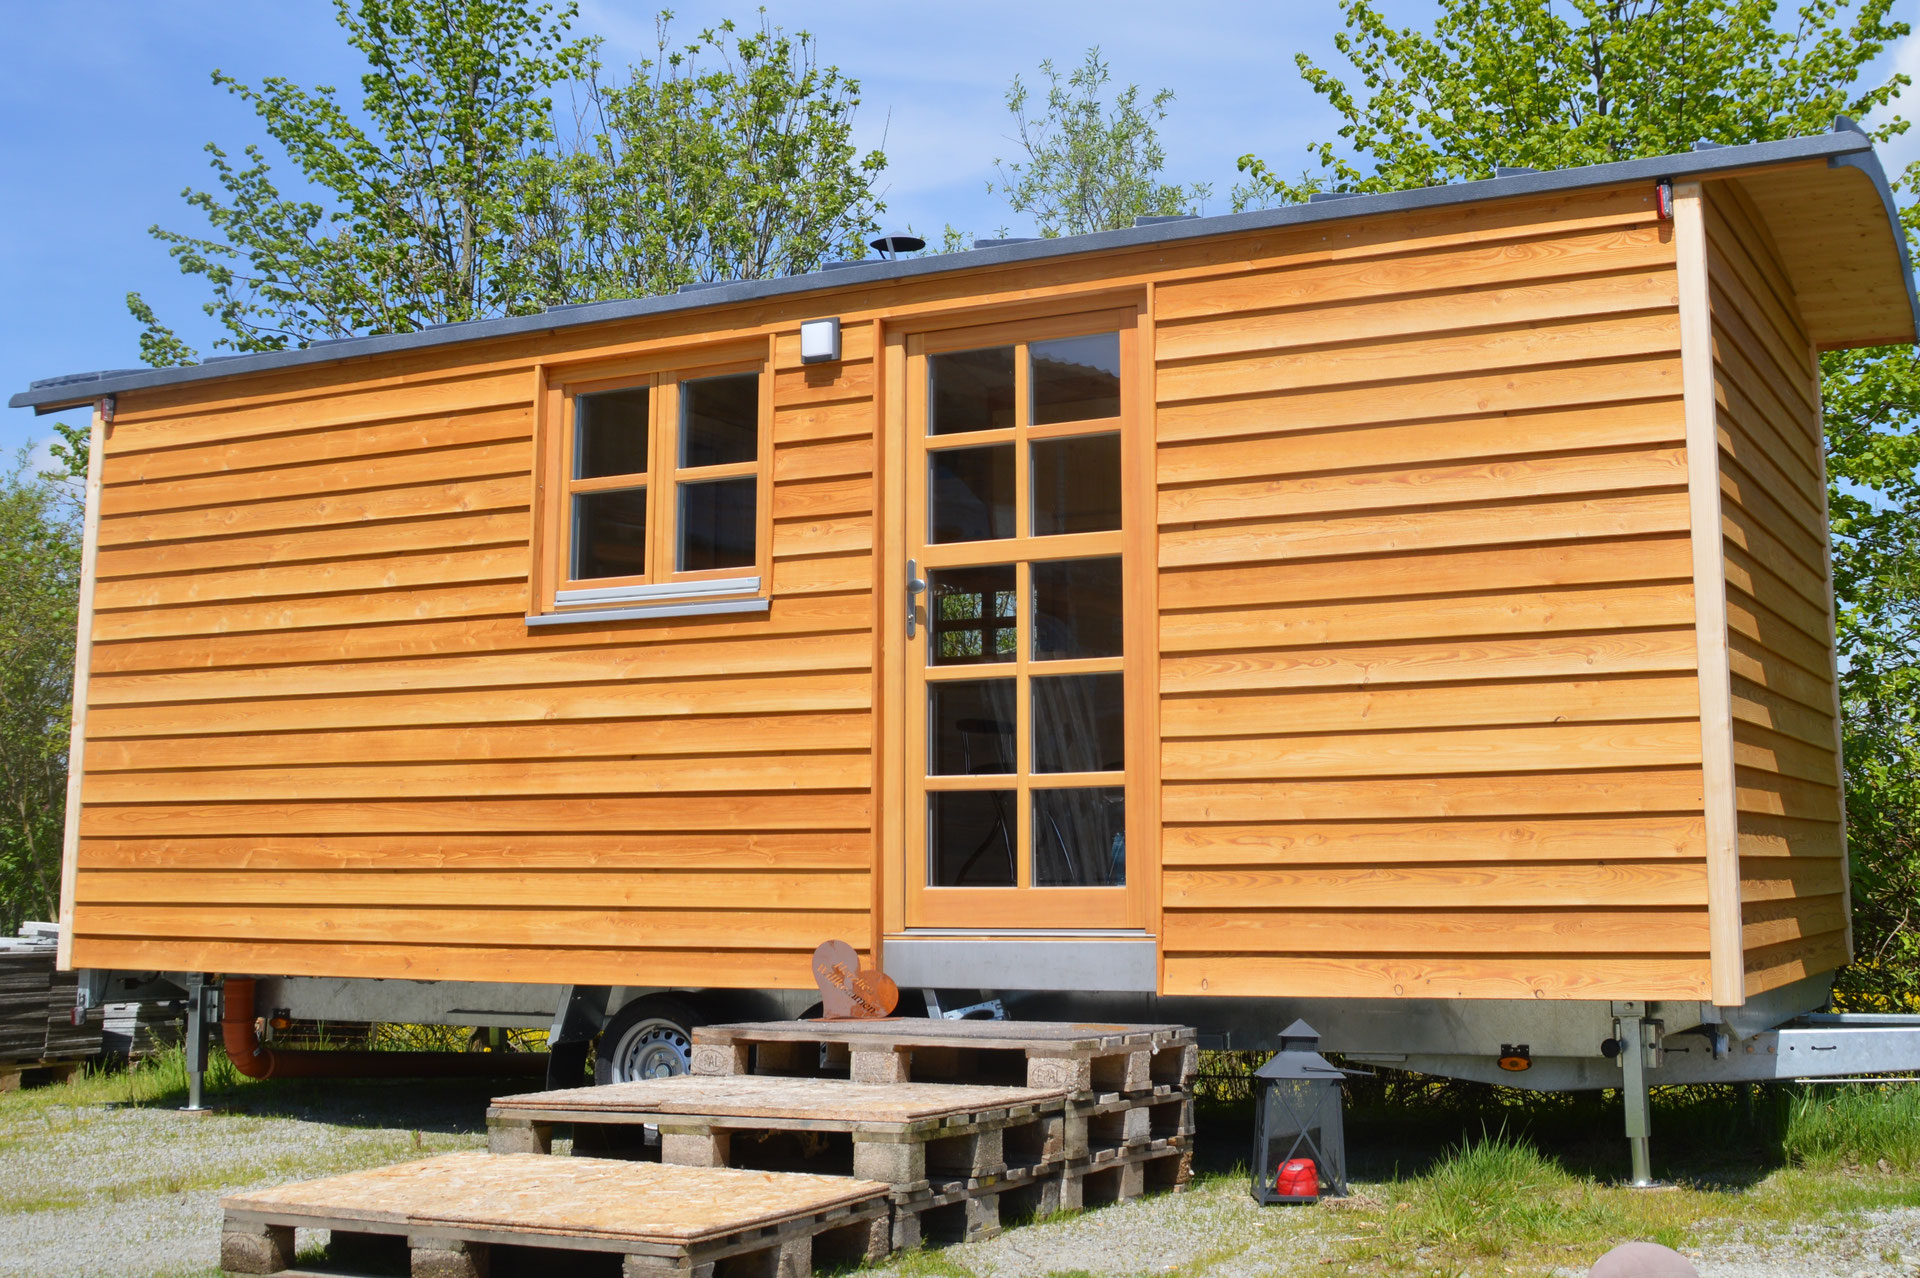 Tiny houses holzbau pletz for Minihaus mobil